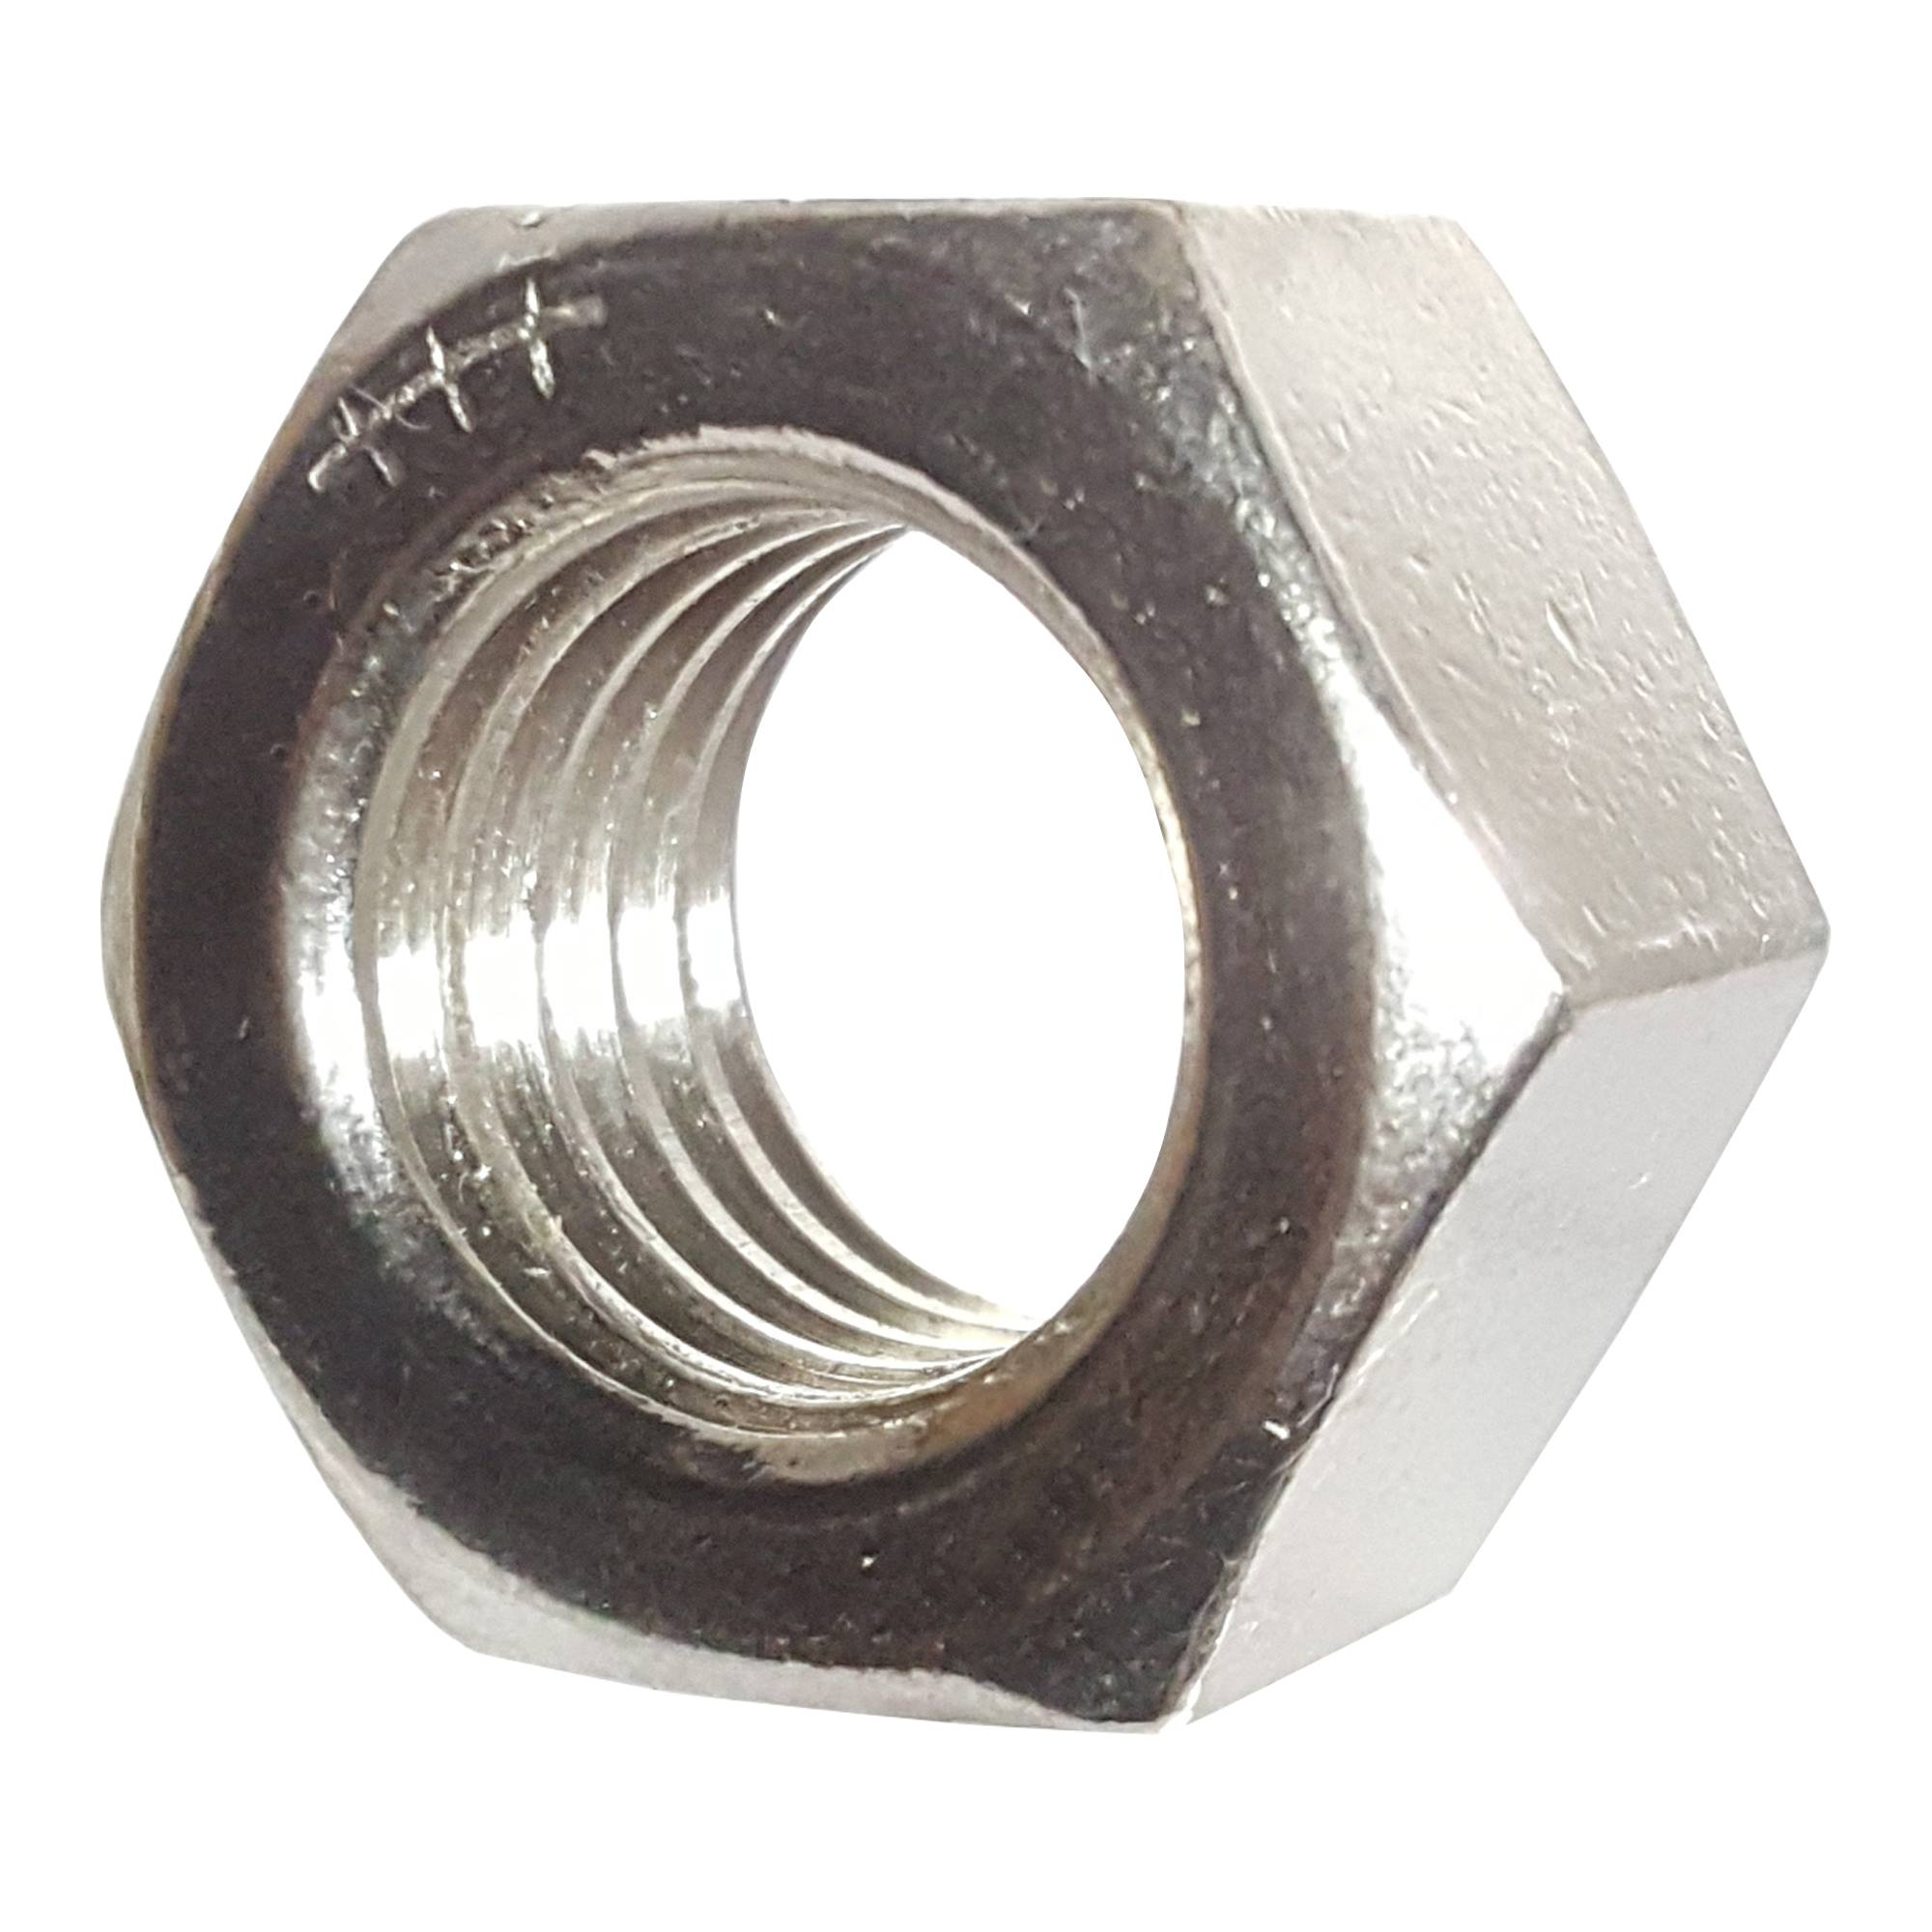 Hex nuts stainless steel full finished all sizes